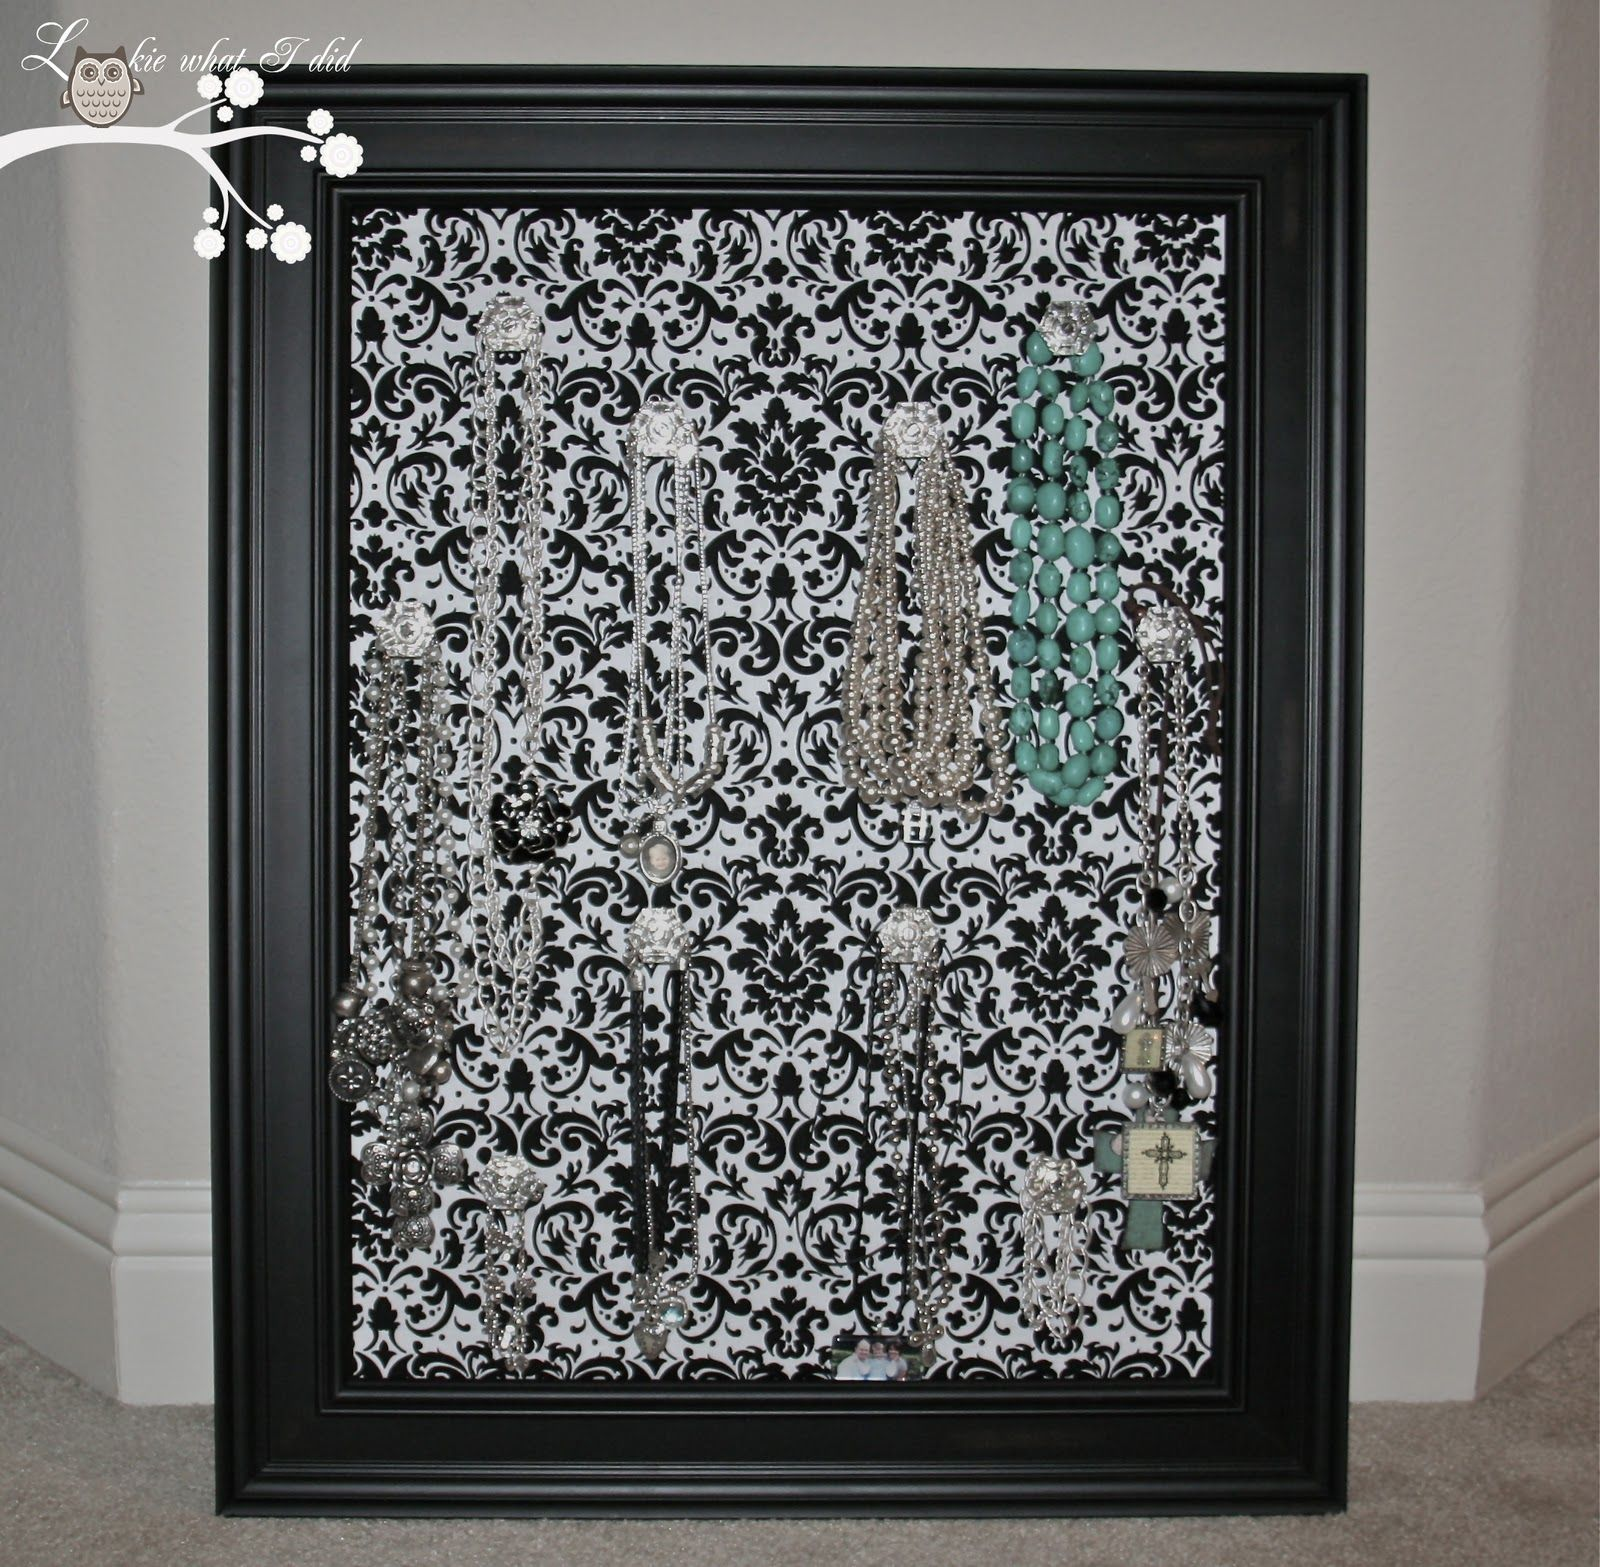 Lookie What I Did: Black and White Damask Jewelry Frame | D.I.Y. ...